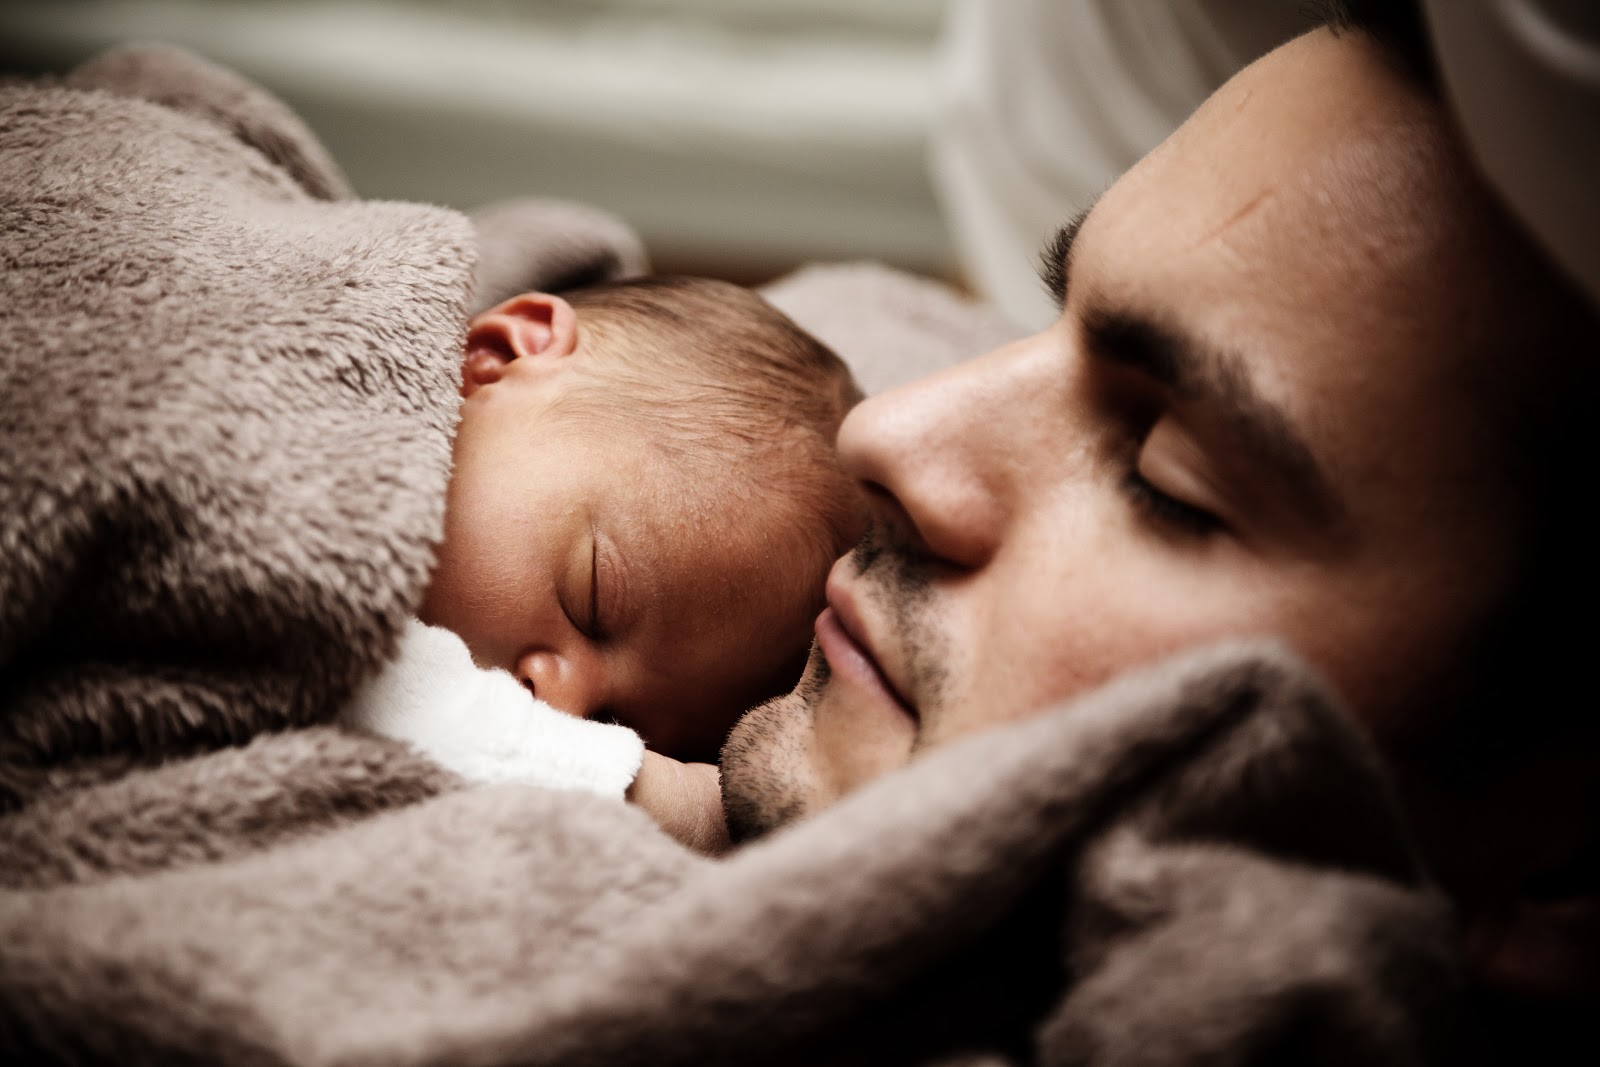 A father takes a nap with his child sleeping on his chest.